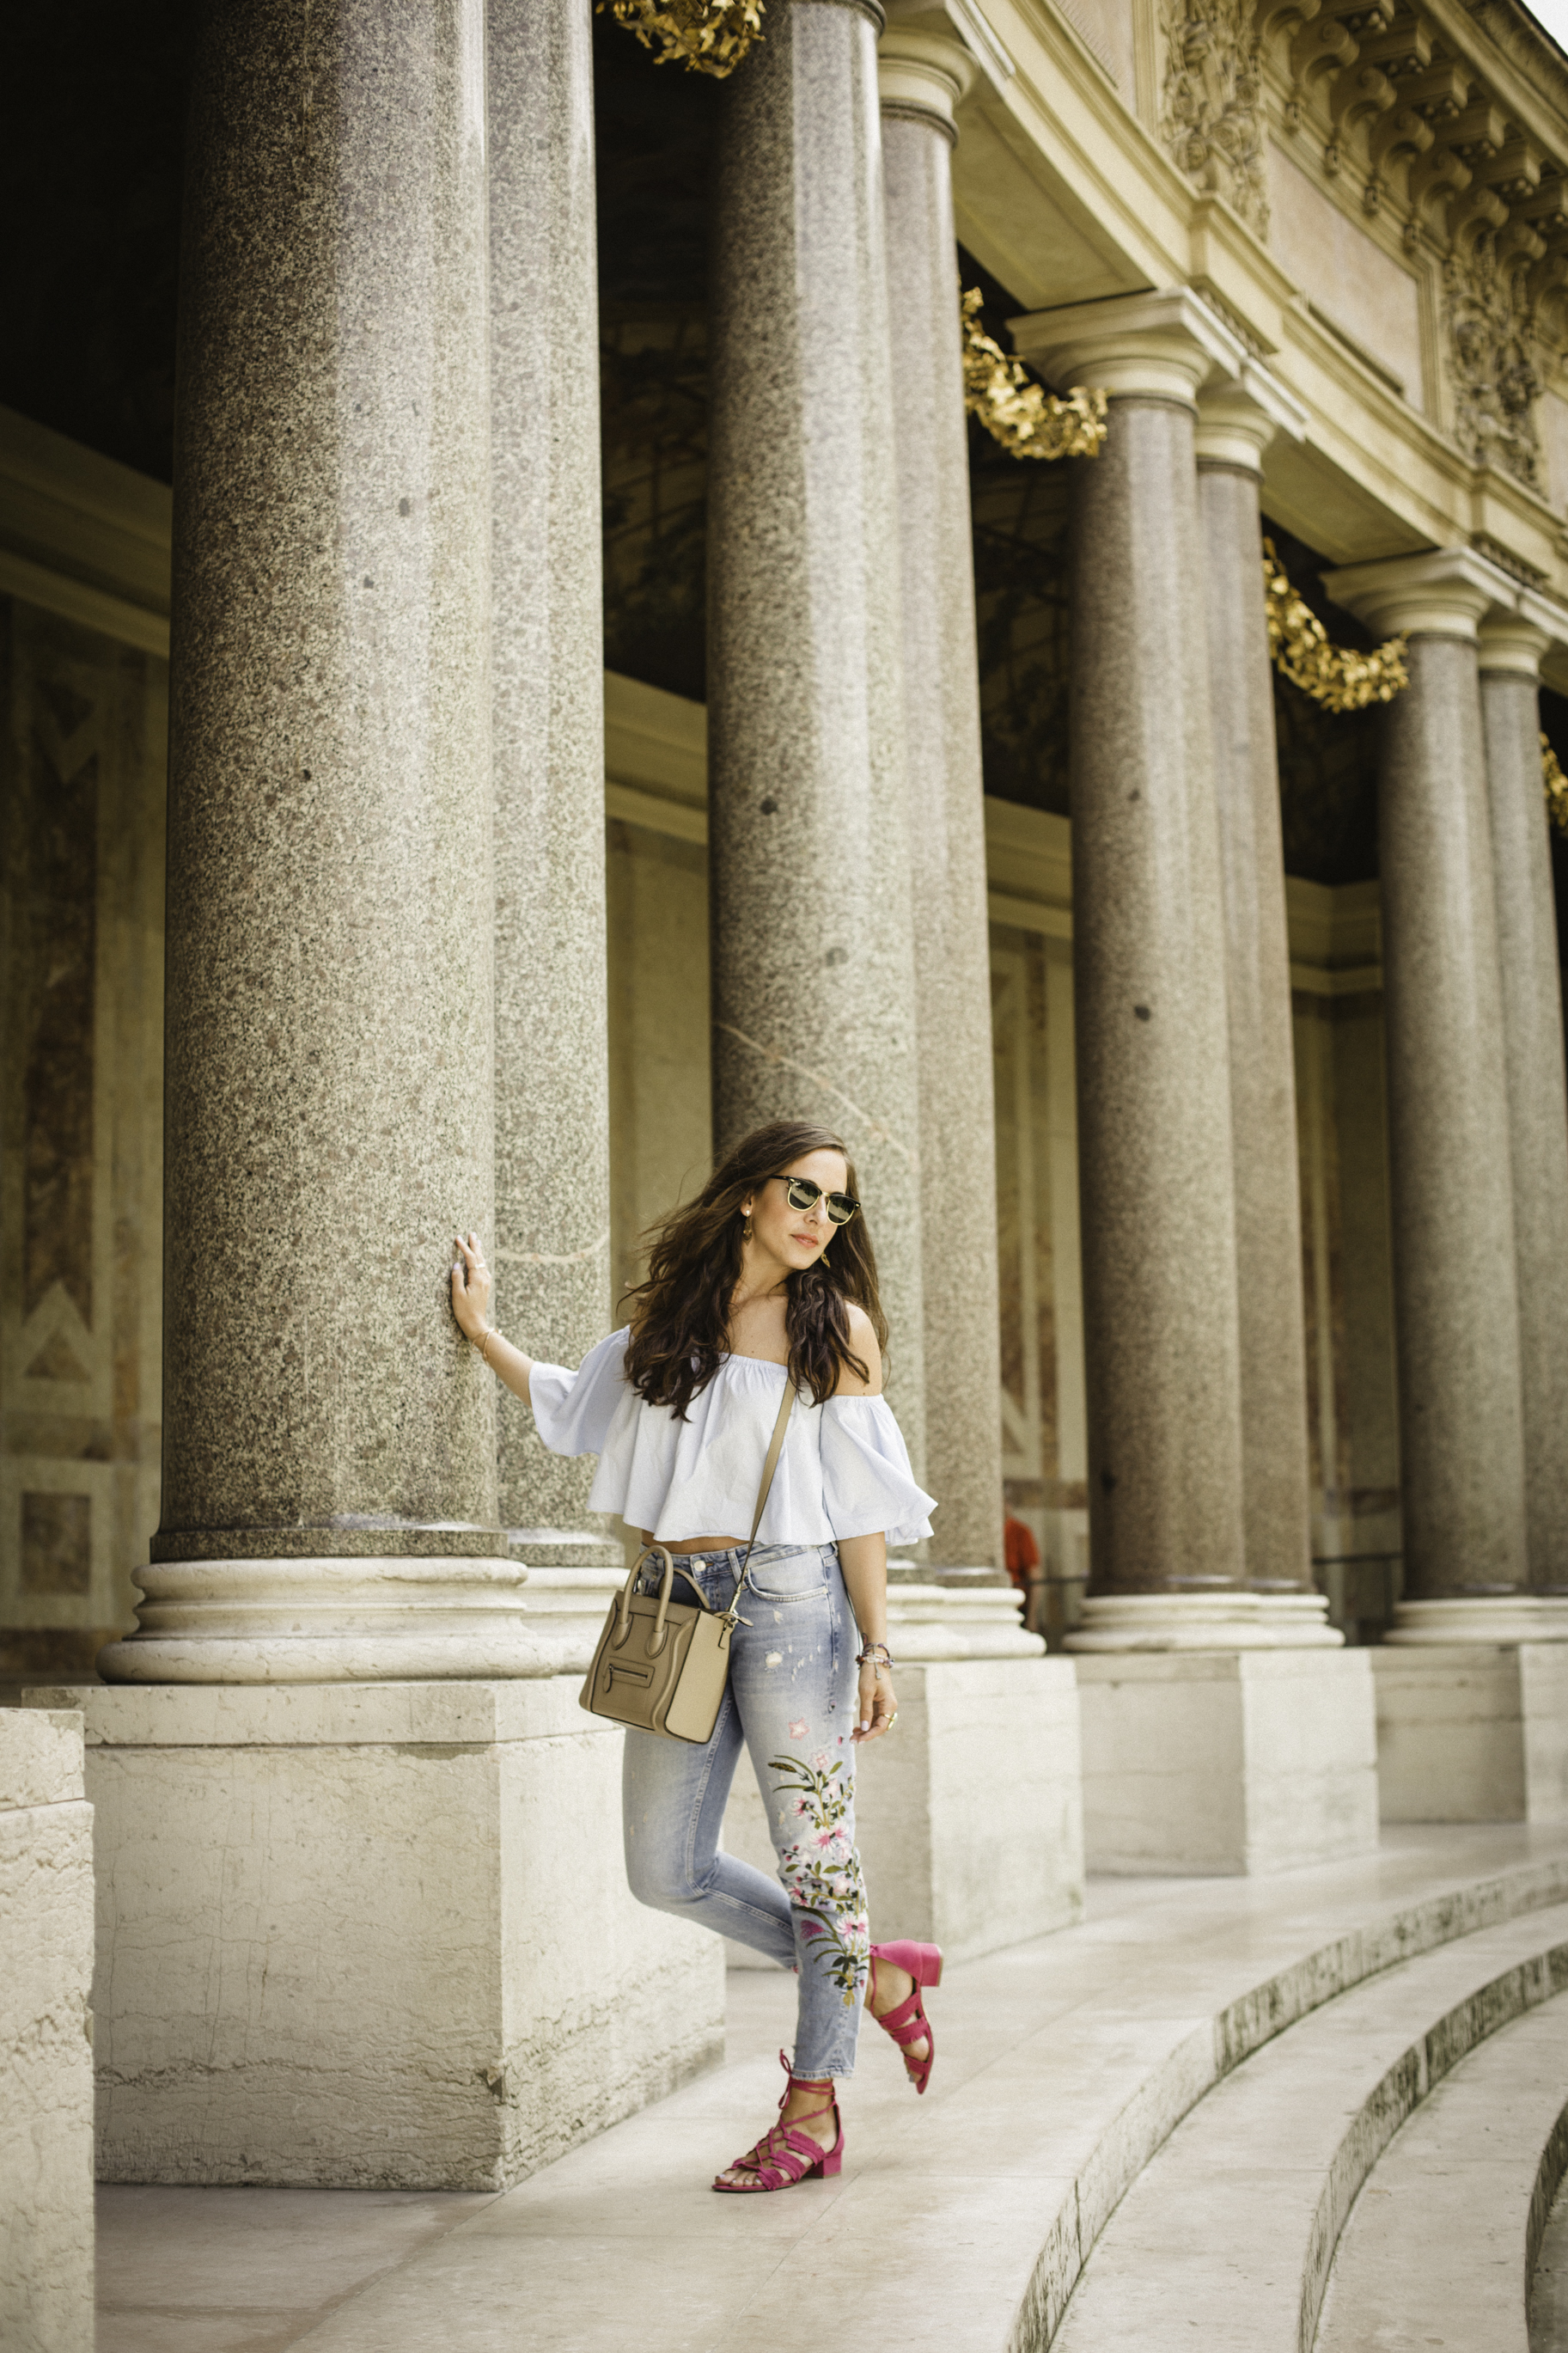 In my Zara top and jeans, Nine West sandals and Celine bag at the Petit Palais in Paris. Photography by  Francisco Graciano .